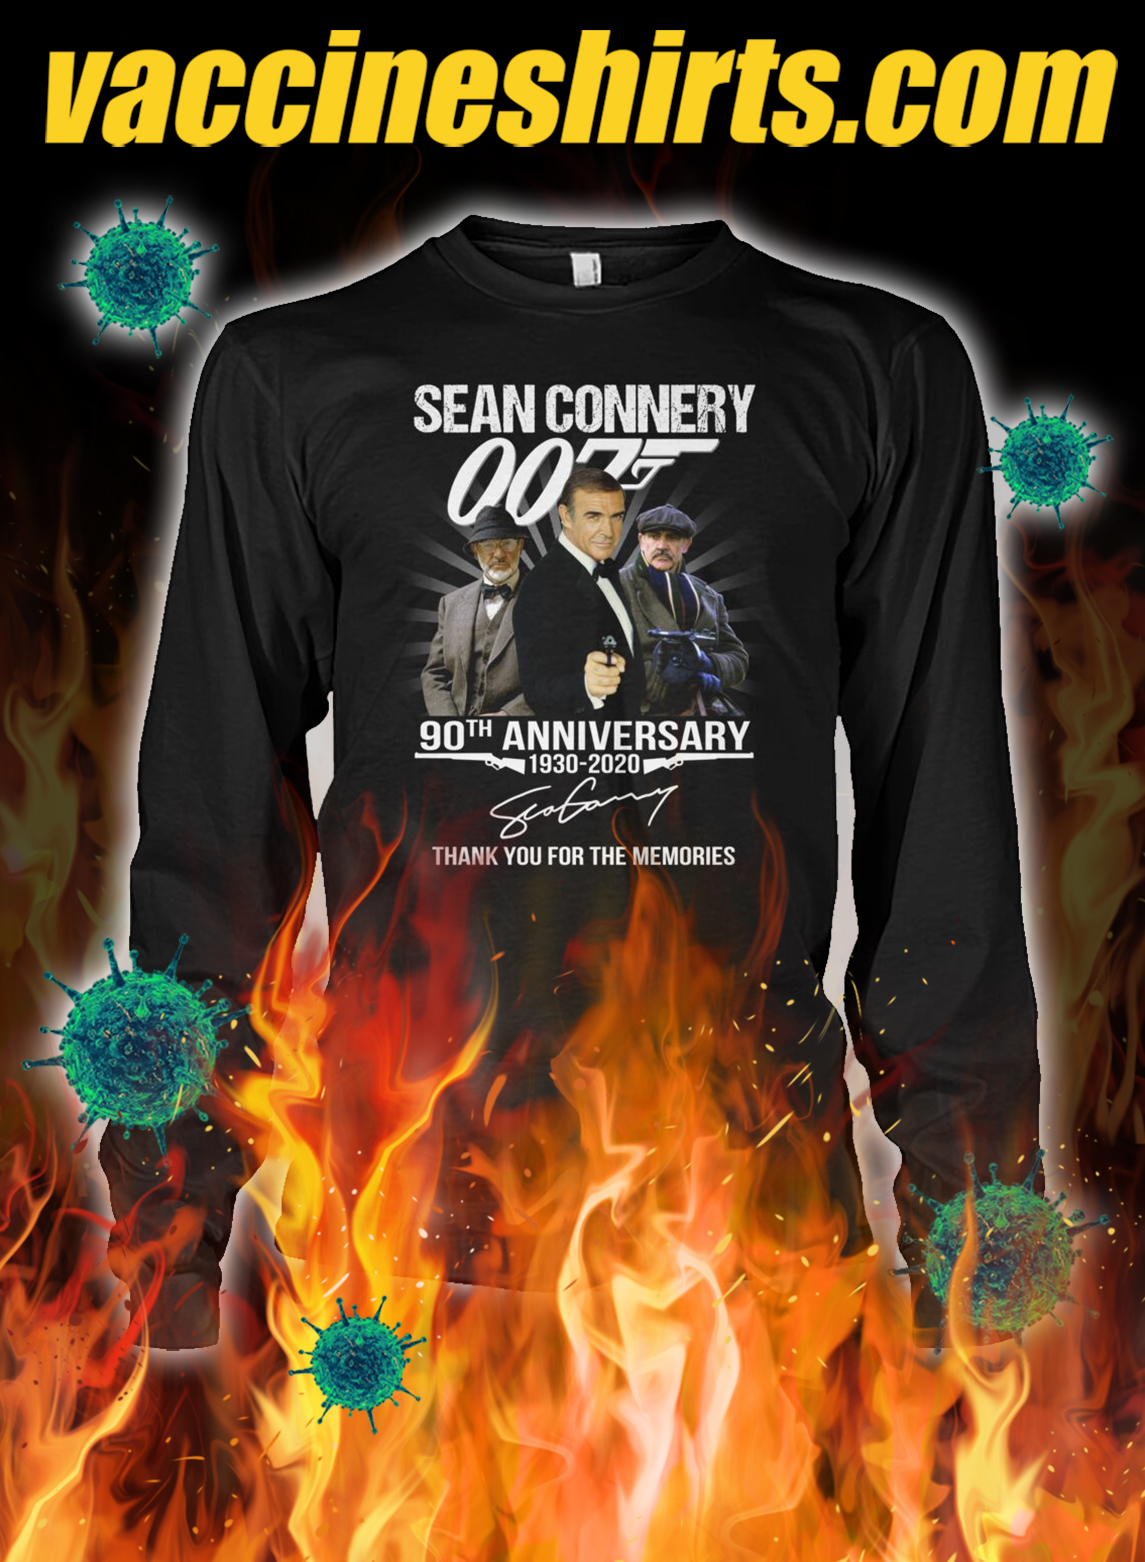 007 Sean connery 90th anniversary thank you for the memories longsleeve tee